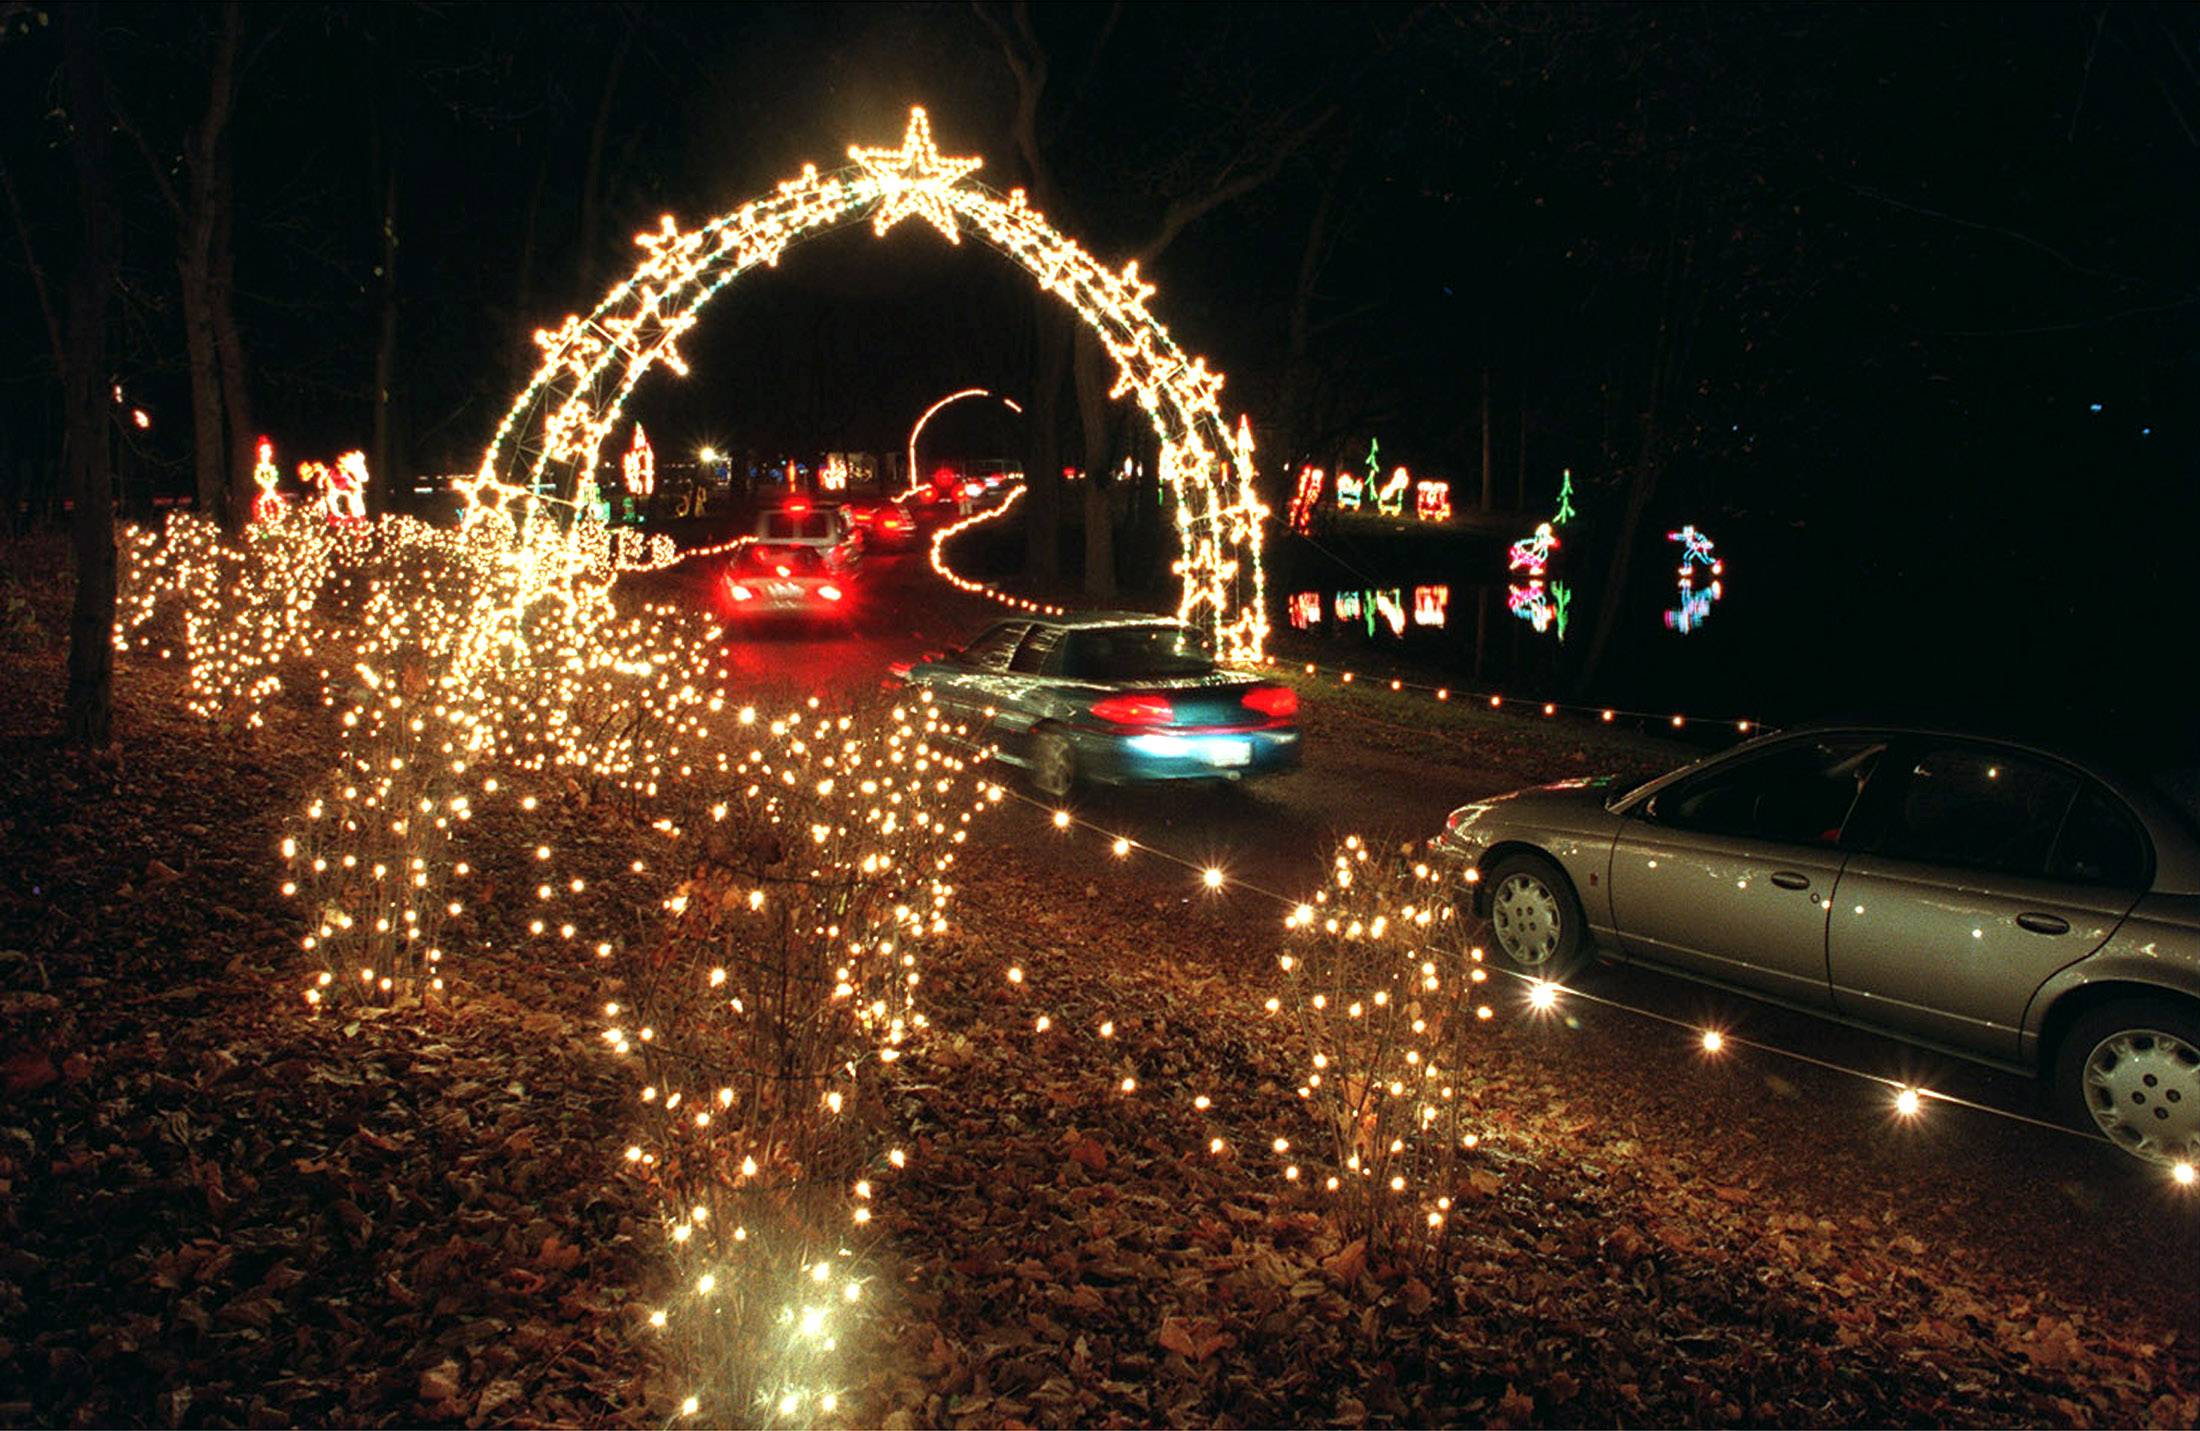 PAUL VALADE/pvalade@dailyherald.com The Winter Wonderland holiday light show in Vernon Hills will be held at least one more time at the Cuneo Mansion & Gardens.